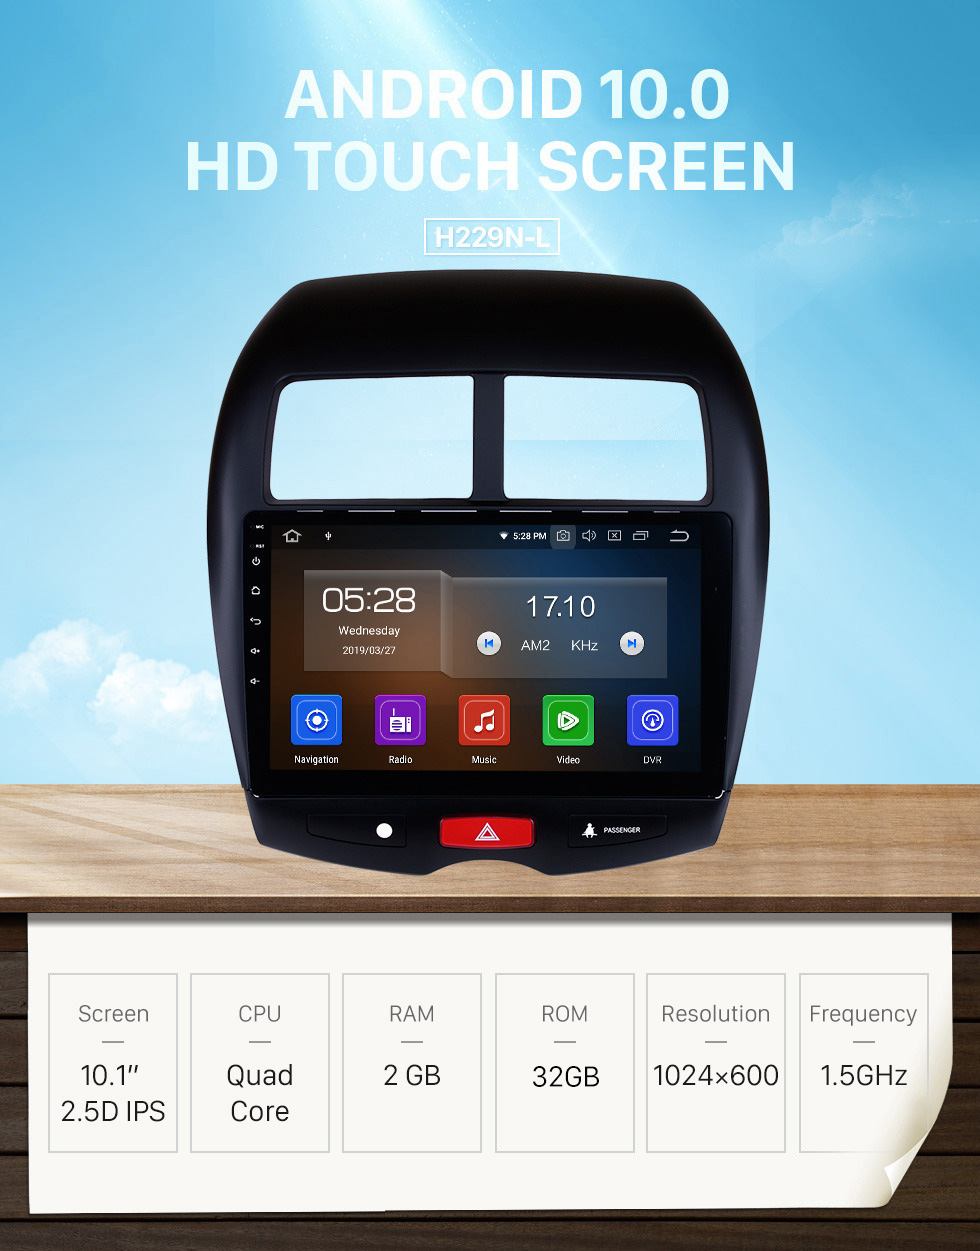 Seicane 10.1 Inch HD Touchscreen Radio Android 10.0 Head Unit For 2010-2012 2013-2015 Mitsubishi ASX Car Stereo GPS Navigation System Bluetooth Phone WIFI Support Mirror Link OBDII DVR Steering Wheel Control USB